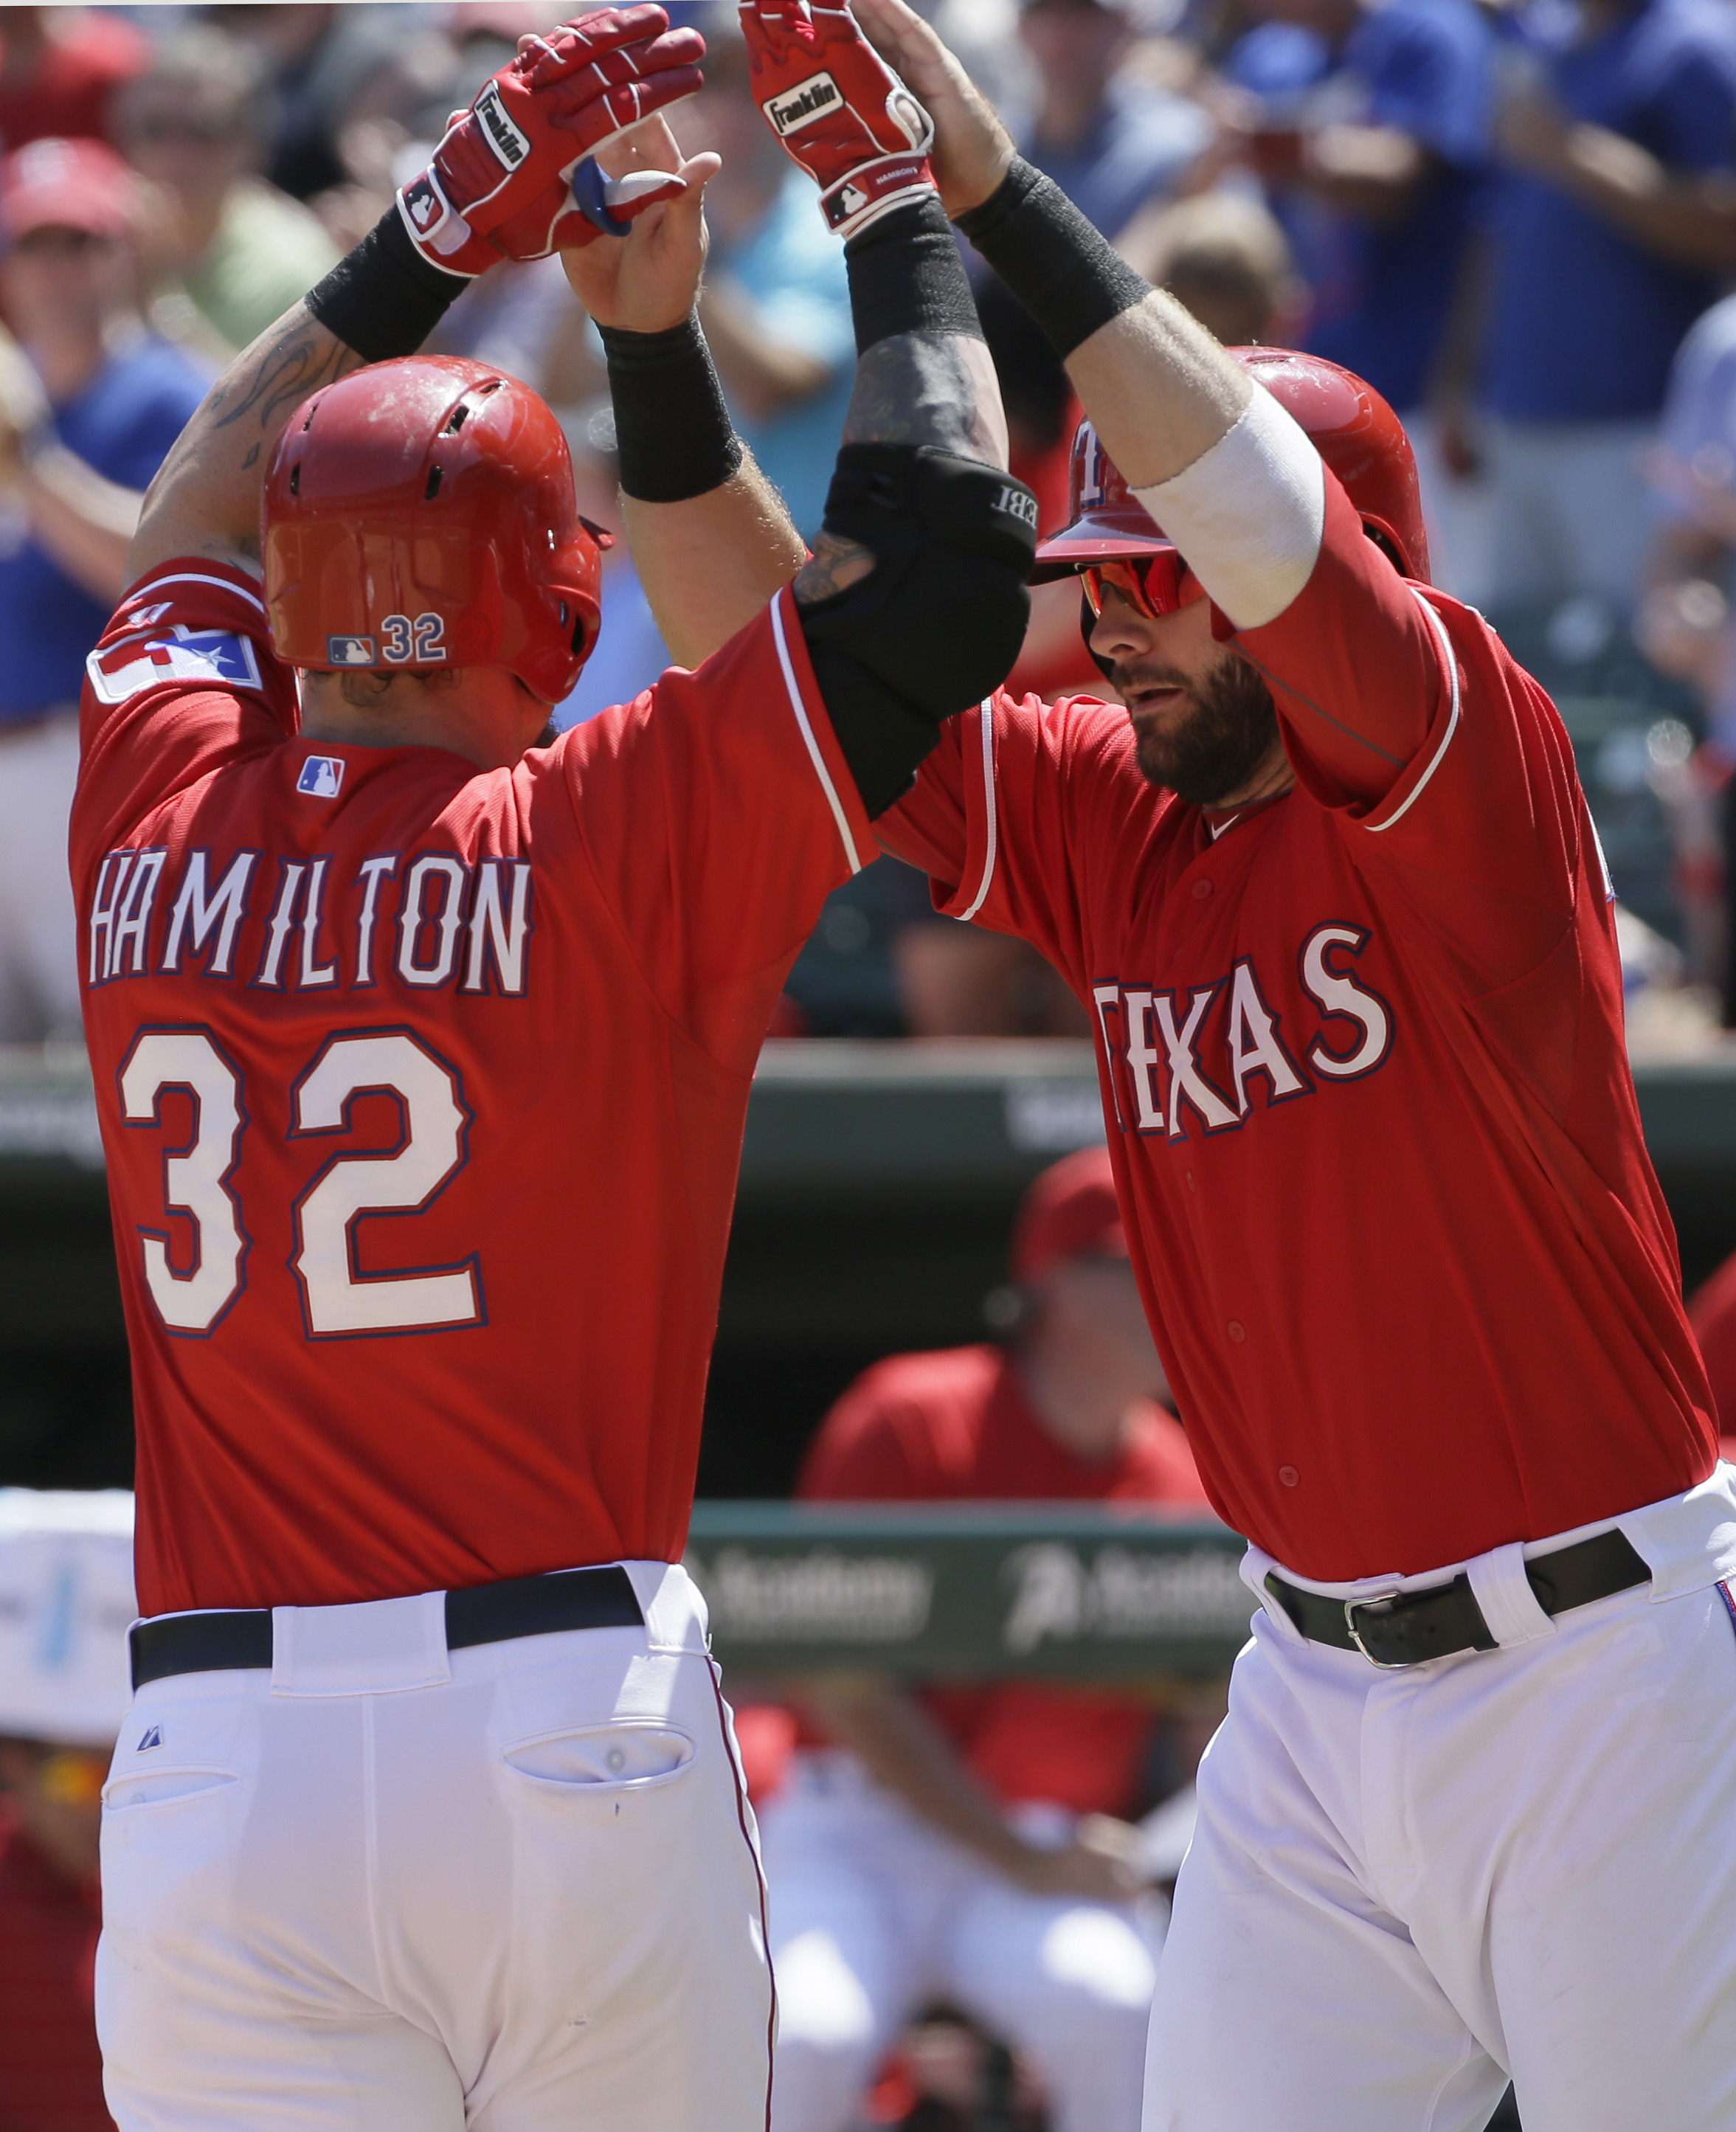 Texas Rangers' Josh Hamilton (32) is met at home plate by teammate Mitch Moreland after hitting a two-run home run, scoring both players, during the seventh inning of a baseball game against the San Francisco Giants in Arlington, Texas, Sunday, Aug. 2, 20